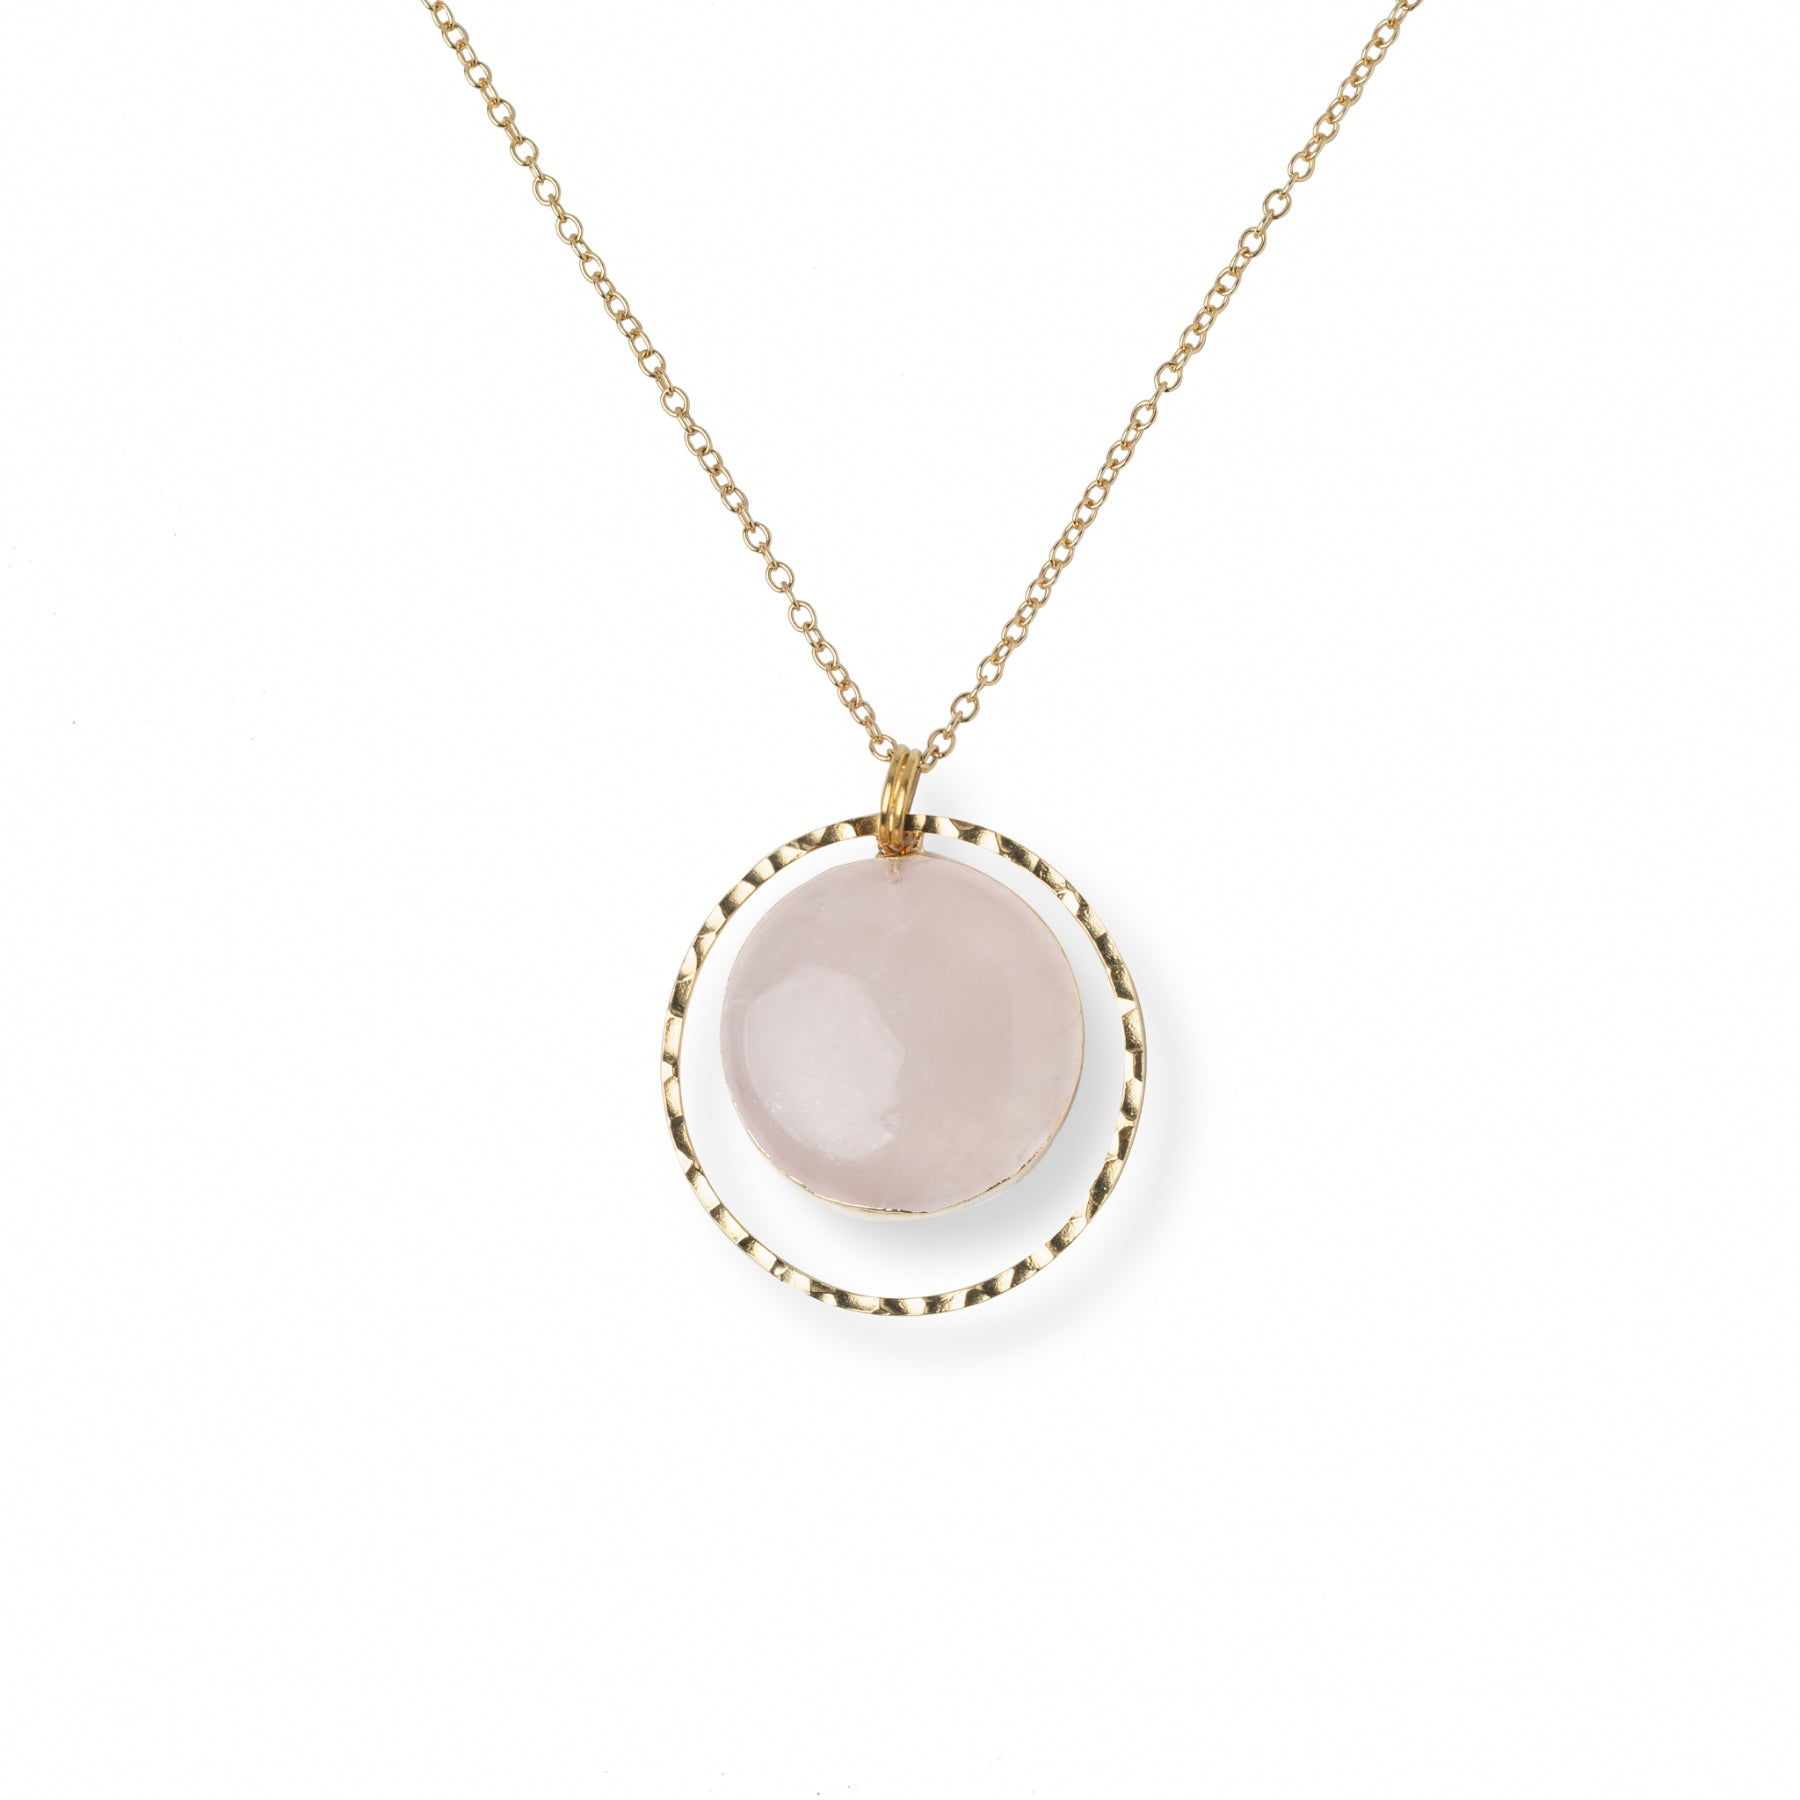 Close-up of Circular Rose Quartz and Gold Hammered Circle Necklace 'I Am Loved' on White Background Product Photo by Asha Blooms